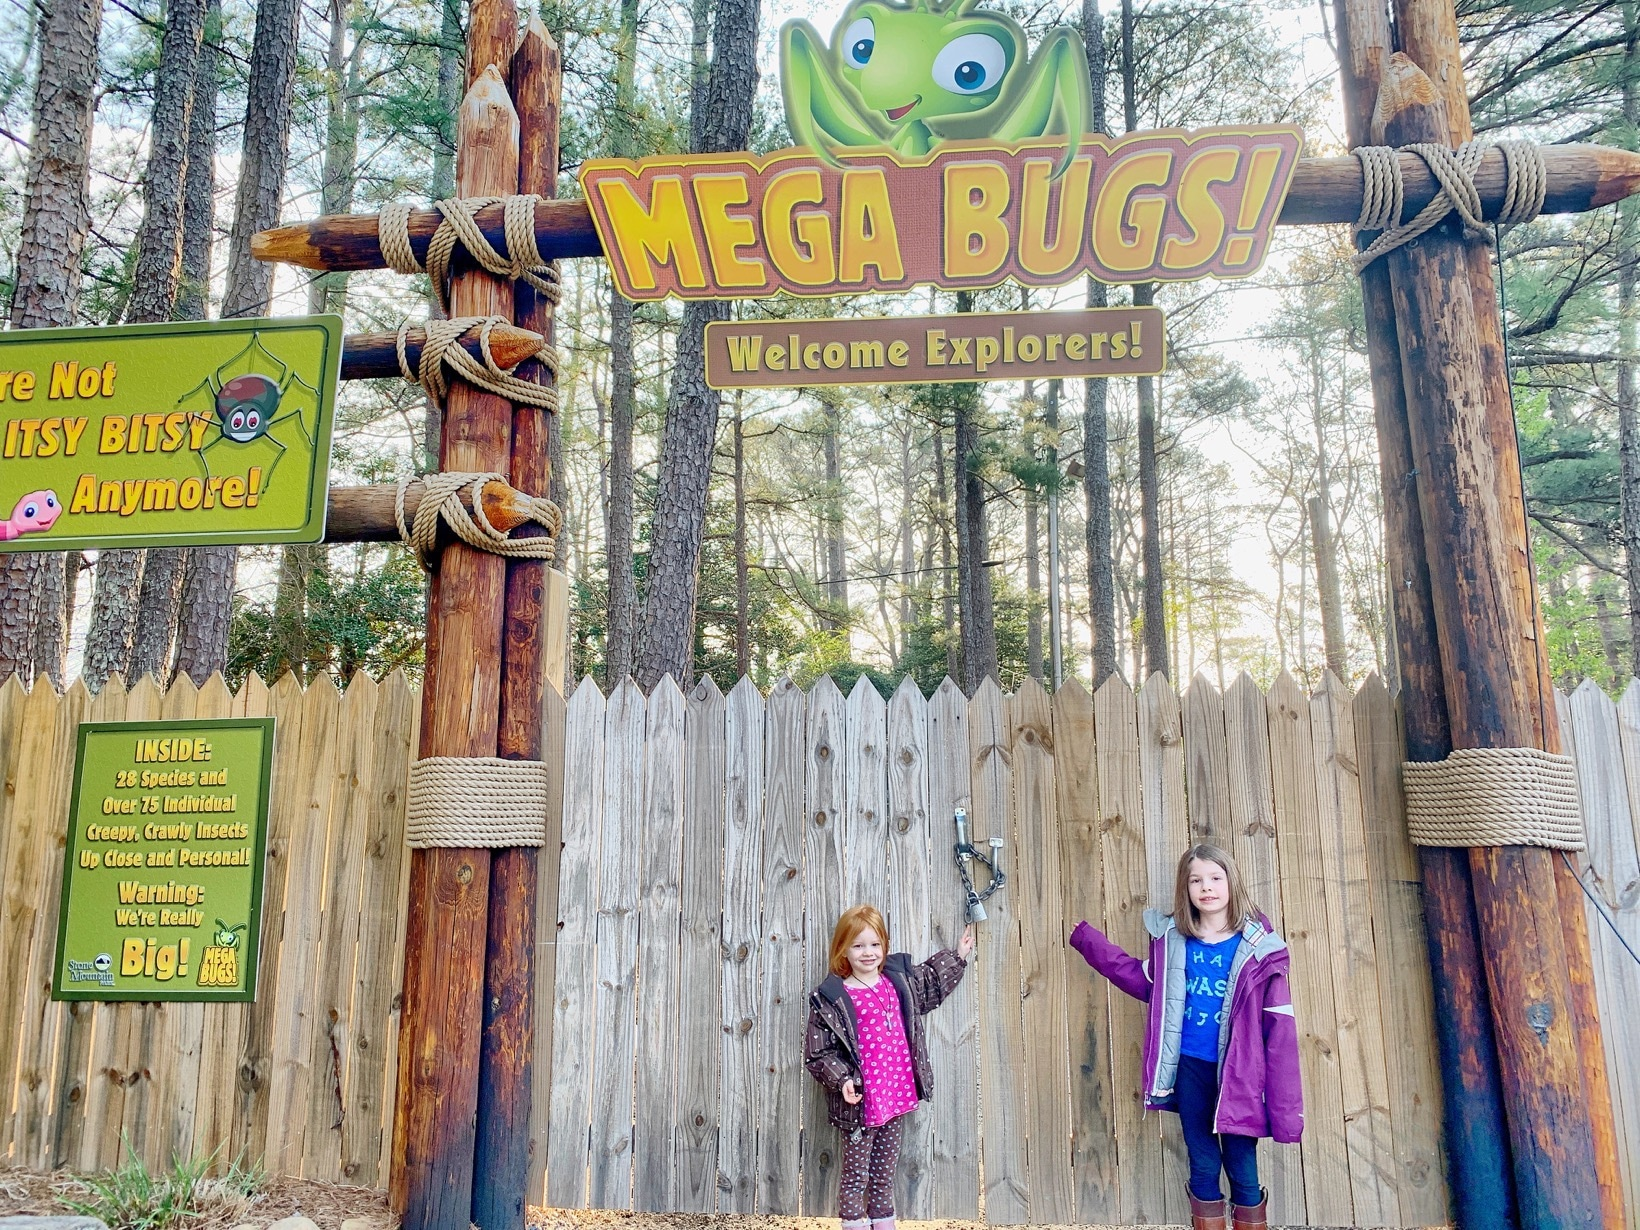 MEGA BUGS at Stone Mountain